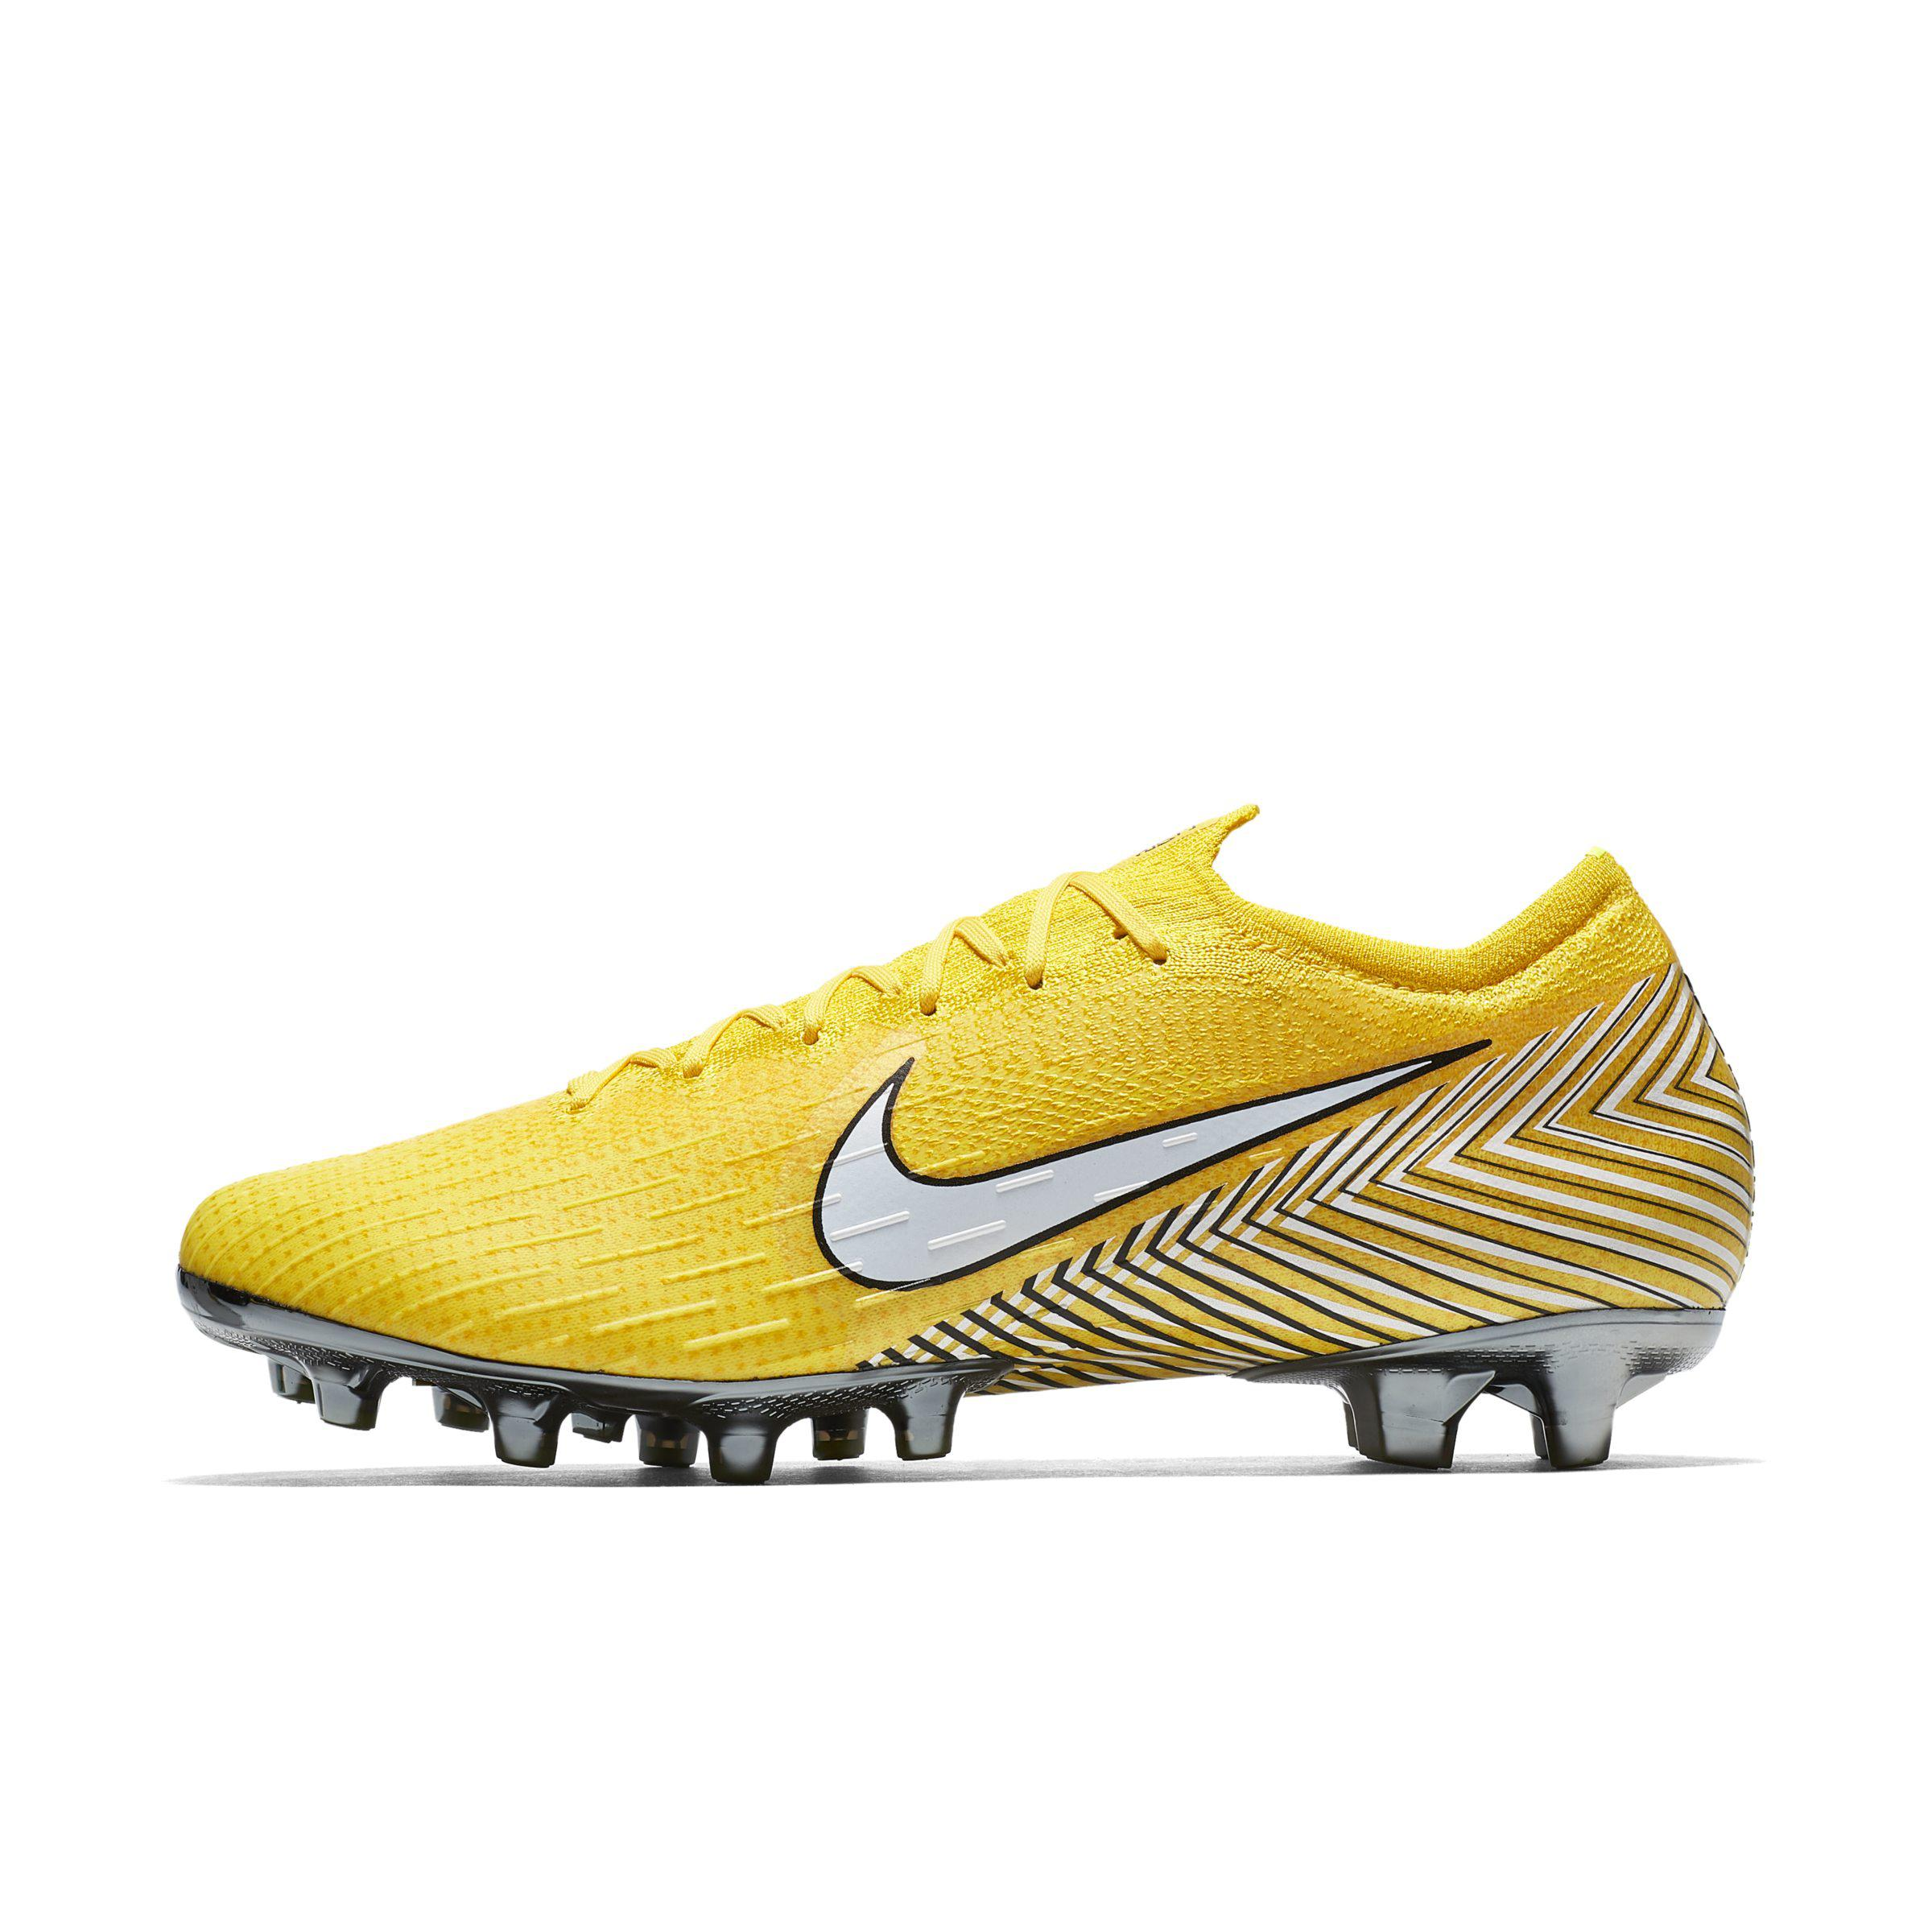 on sale 08625 3ddf7 Nike Mercurial Vapor 360 Elite Neymar Jr. Ag-pro Artificial-grass ...